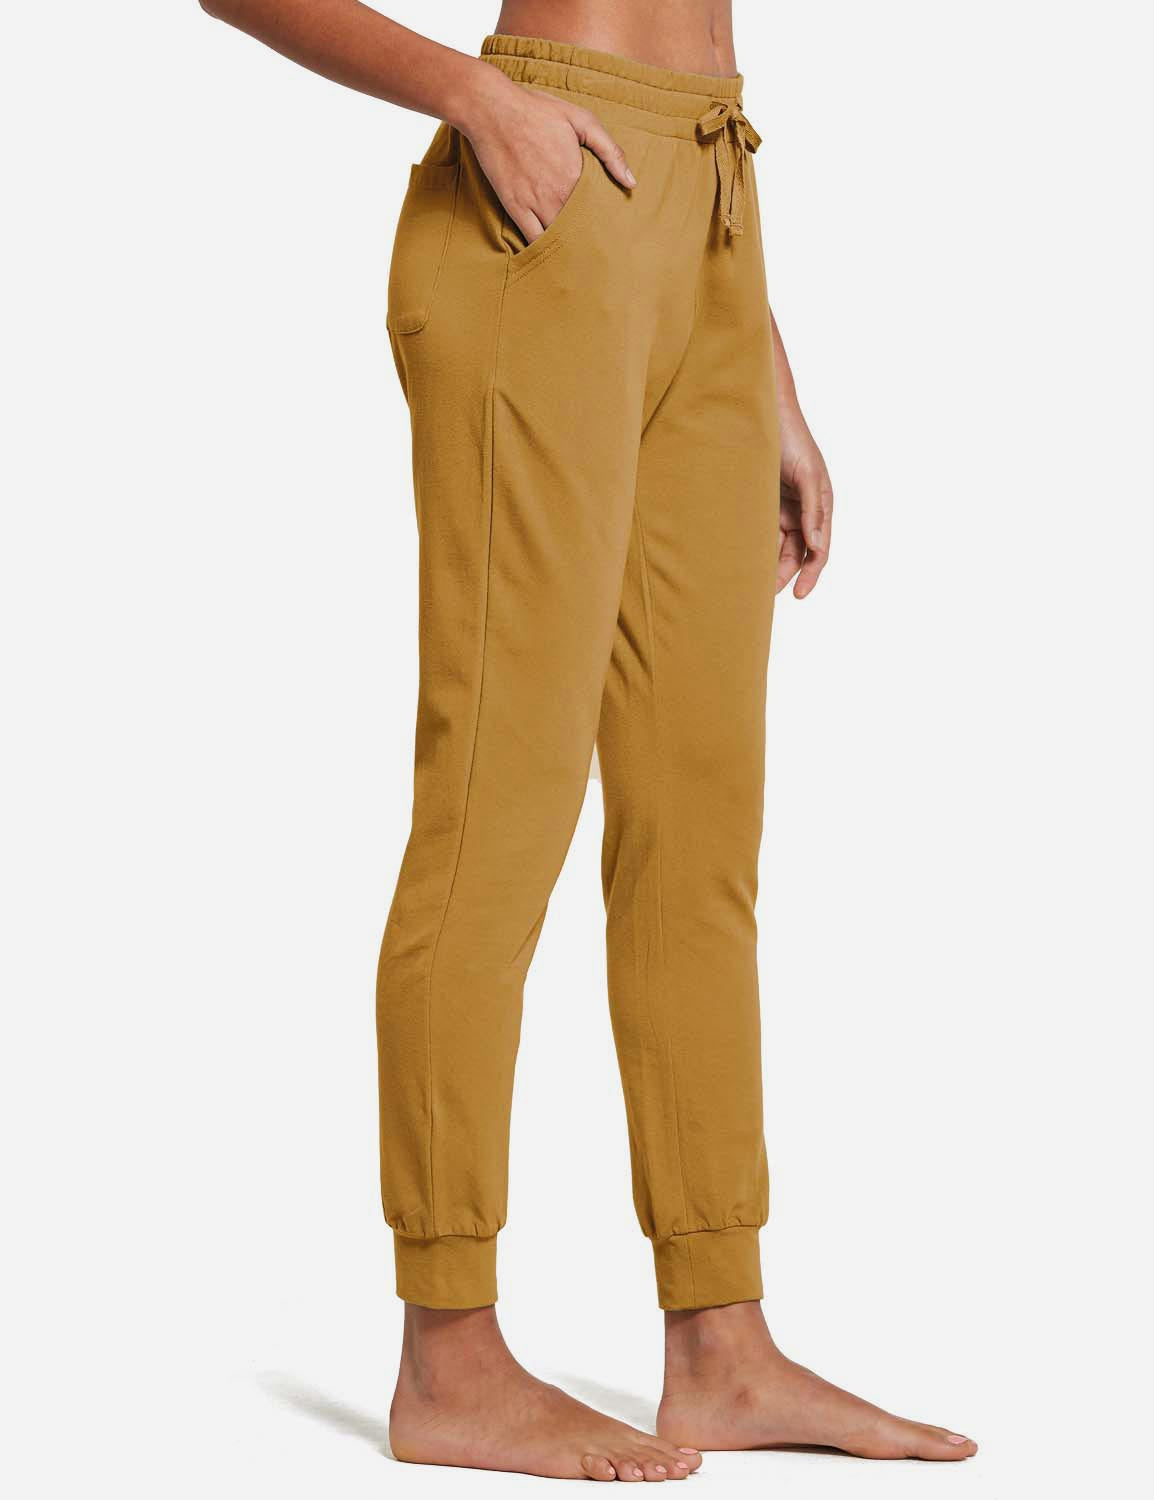 Baleaf Womens Tapered Drawcord Pants SaddleBrown side